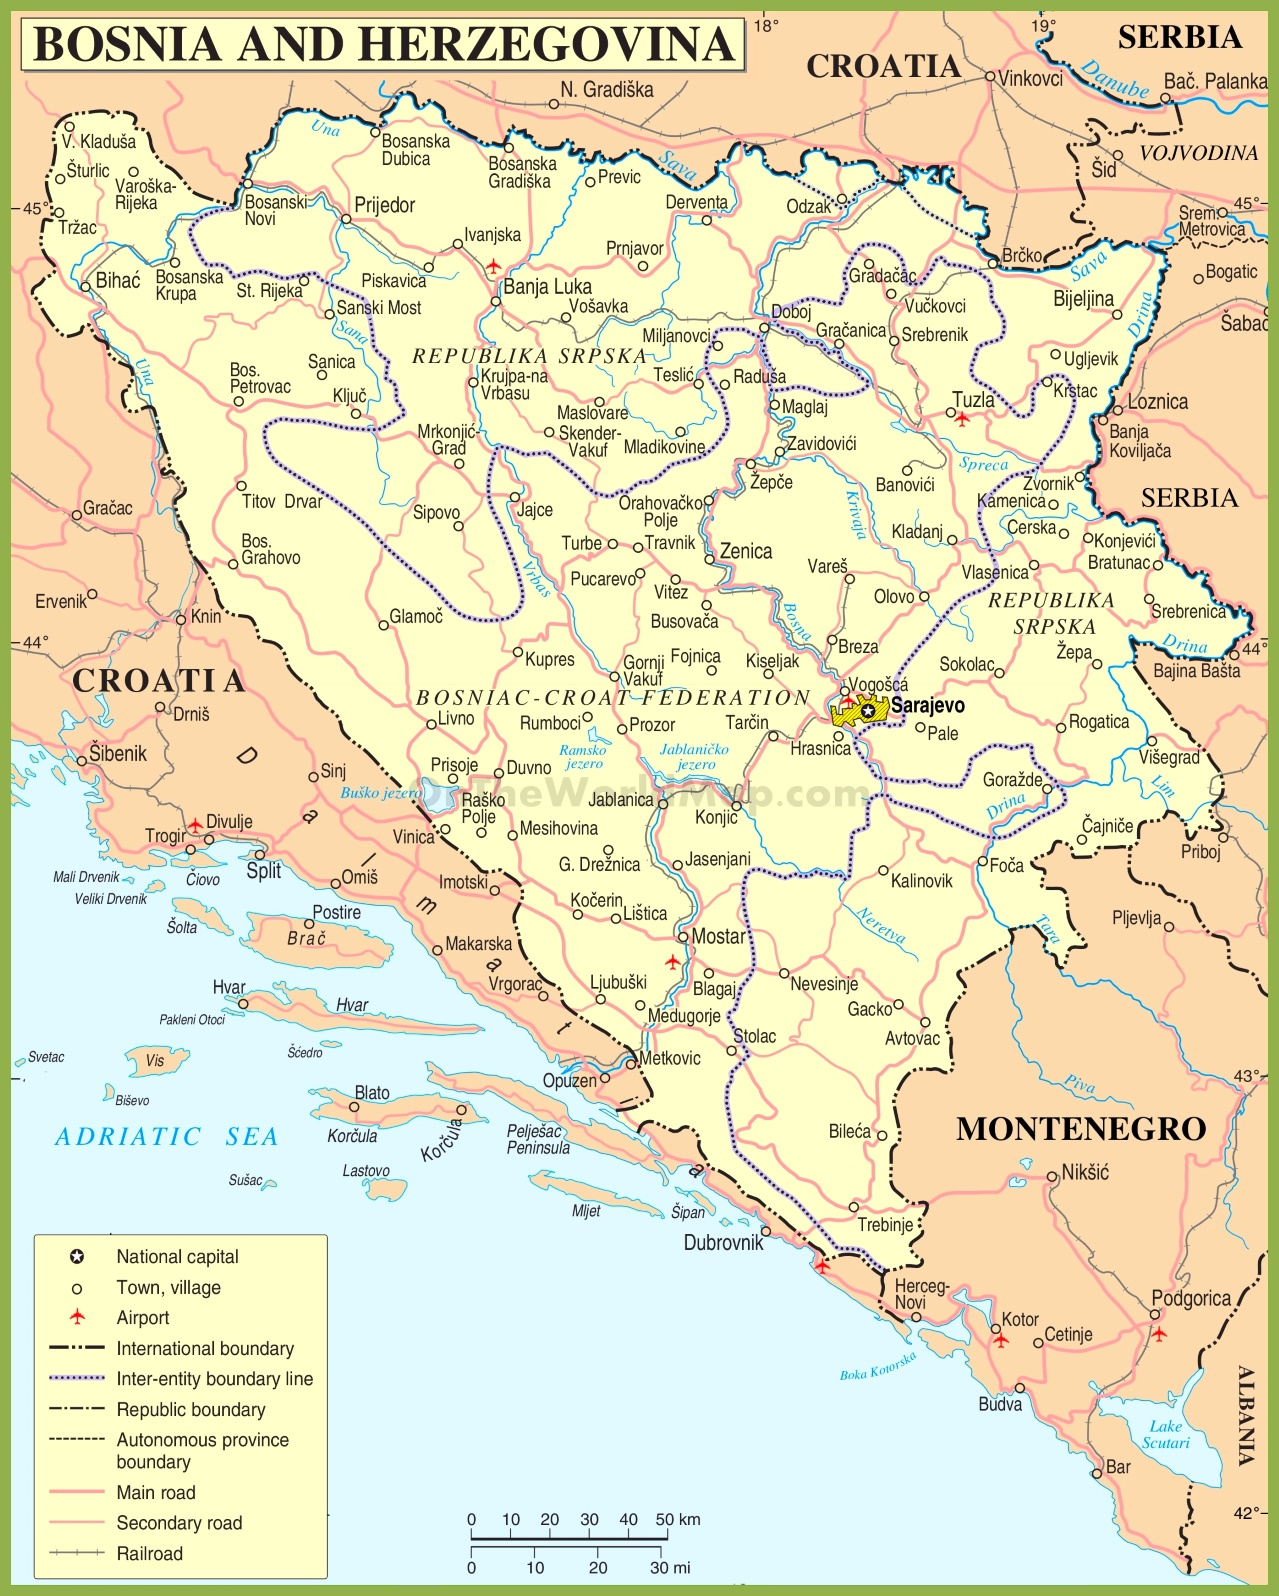 Road map of Bosnia and Herzegovina